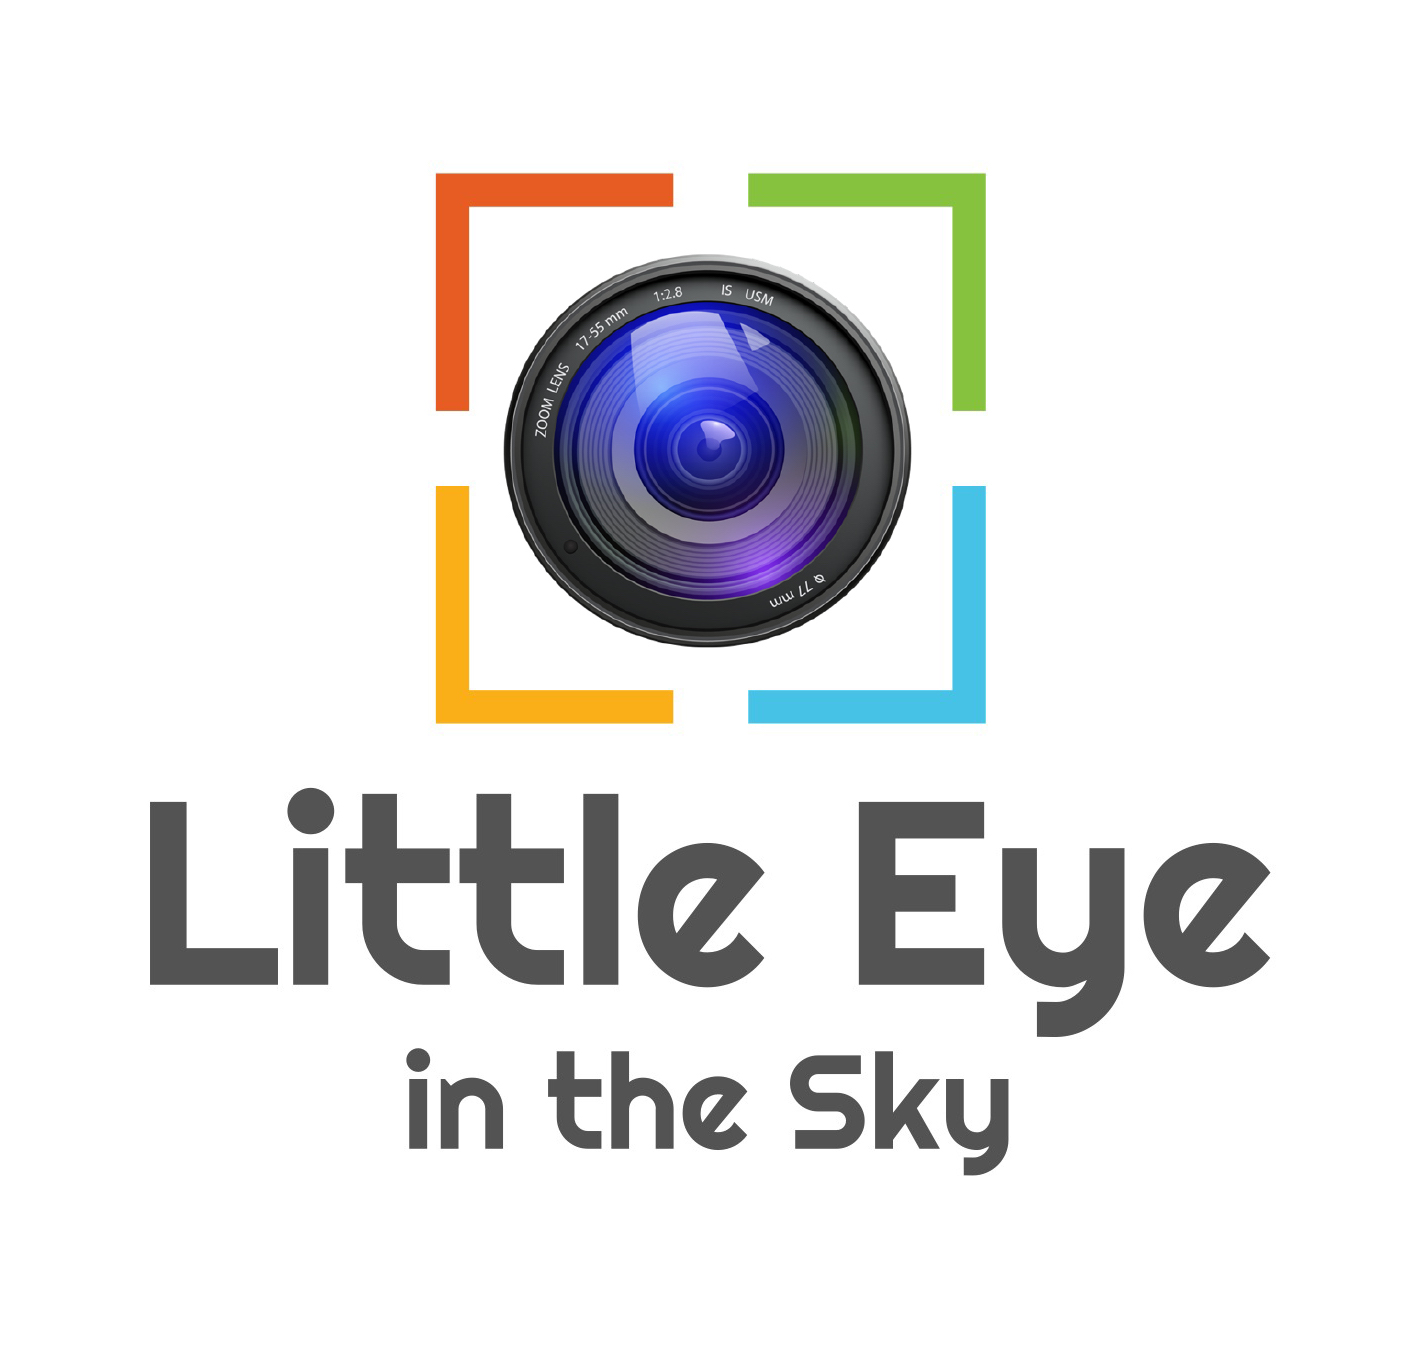 Little Eye in the Sky